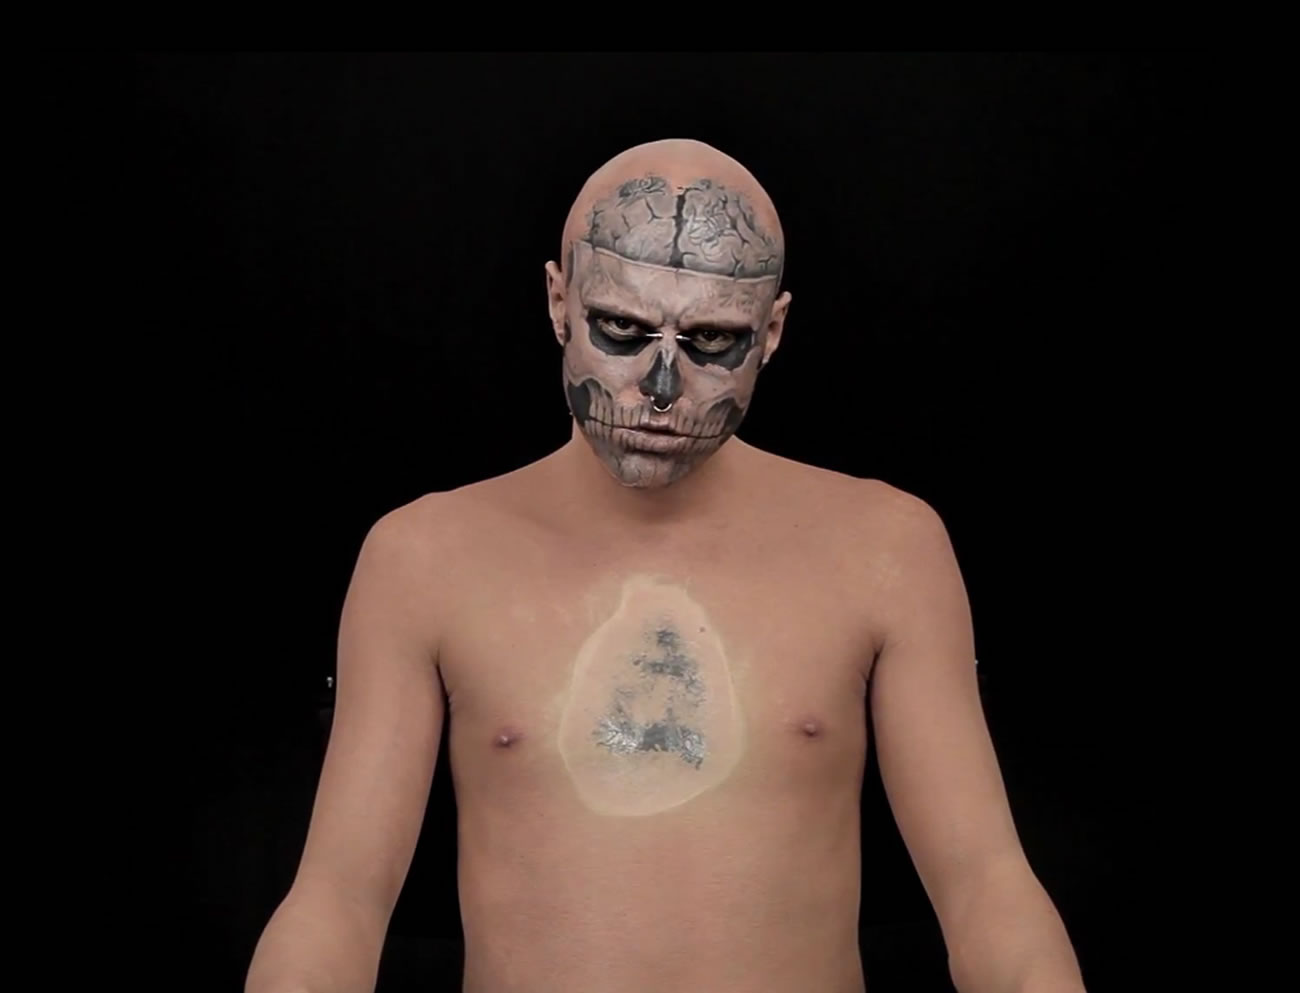 See Zombie Boy without Tattoos